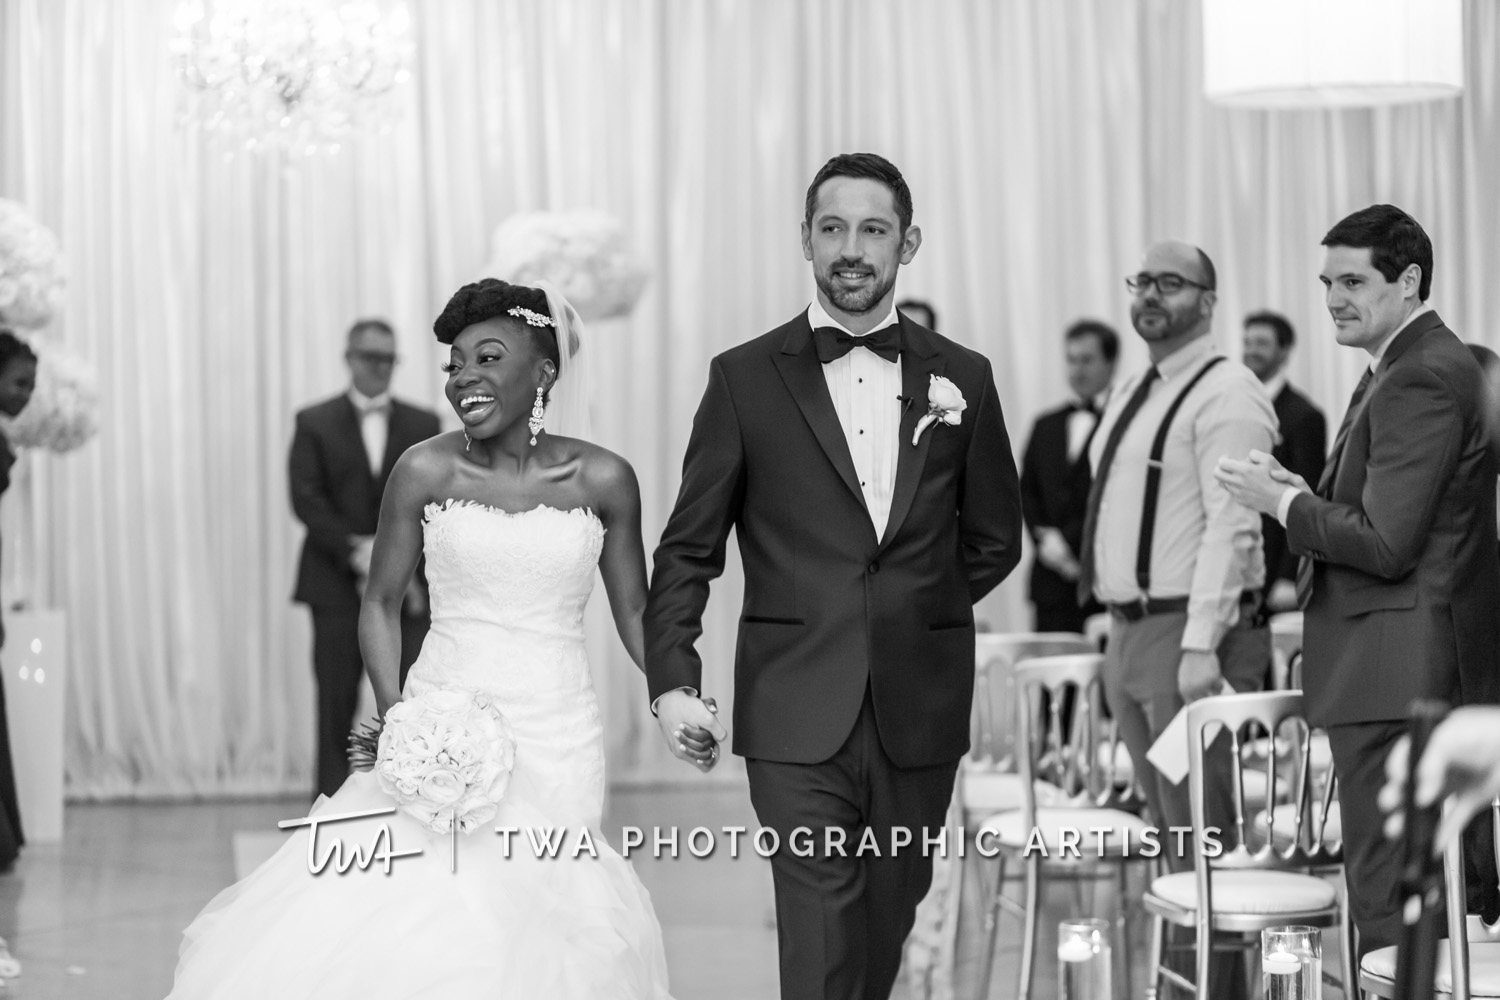 Chicago-Wedding-Photographer-TWA-Photographic-Artists-Stan-Mansion_Ityavyar_Oakley_MJ-0303-1